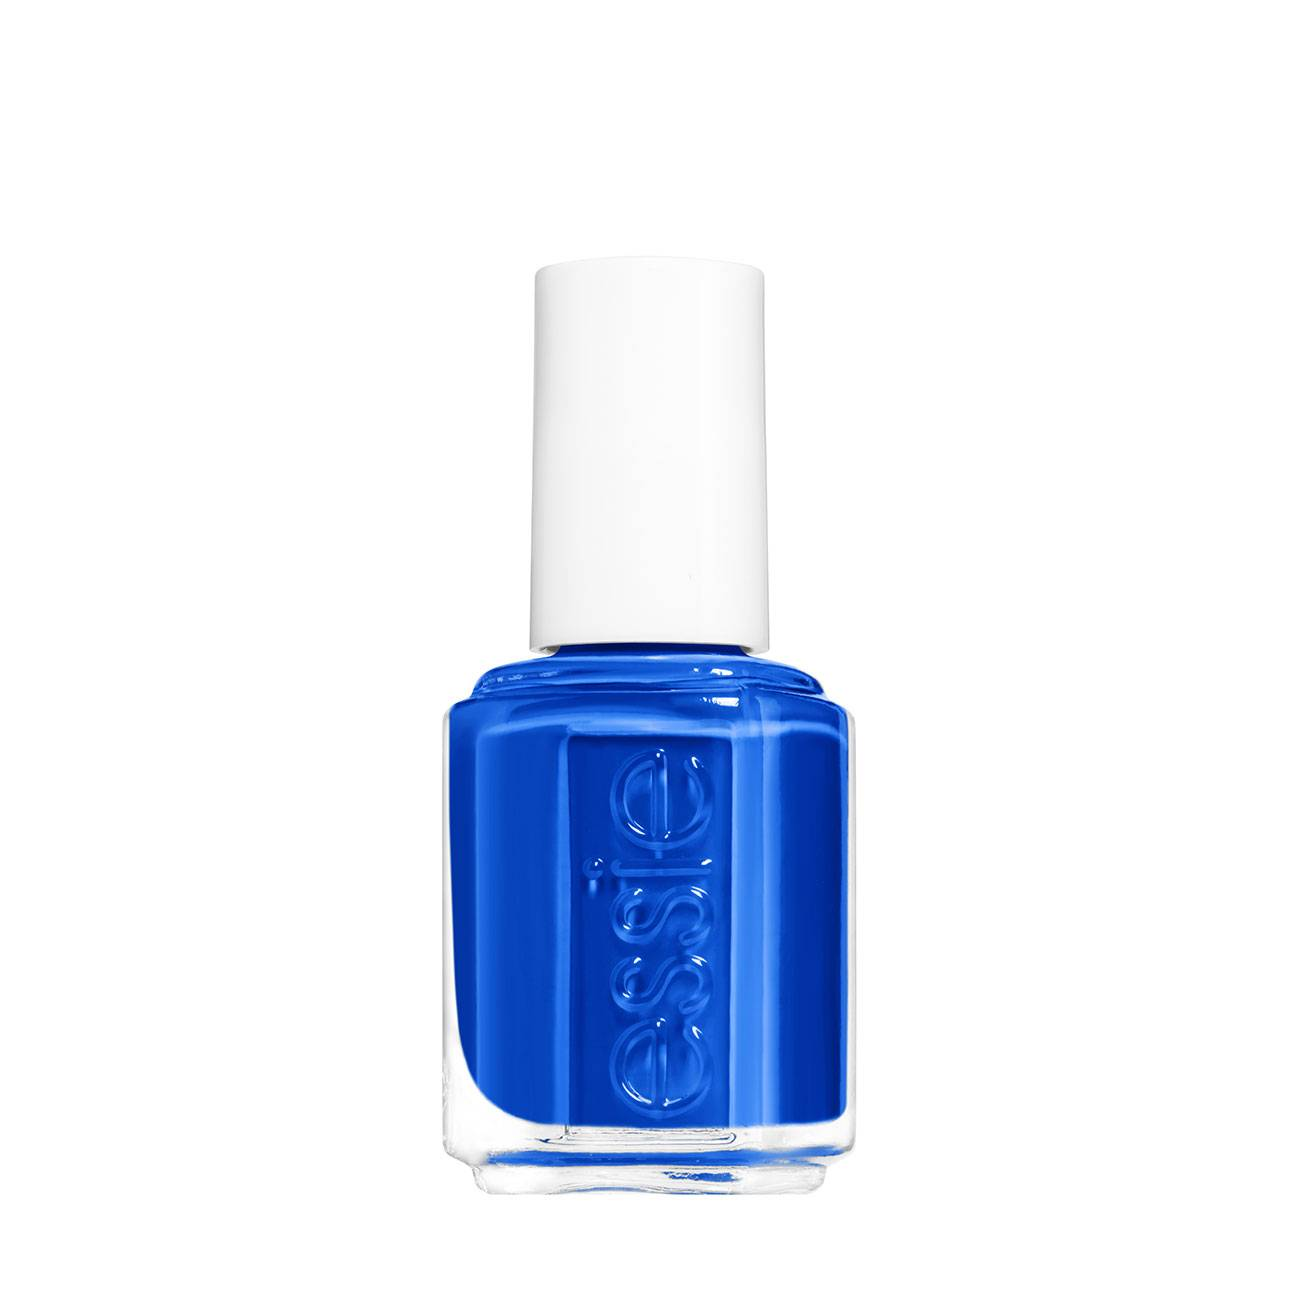 Nail Polish 93 14ml Essie imagine 2021 bestvalue.eu